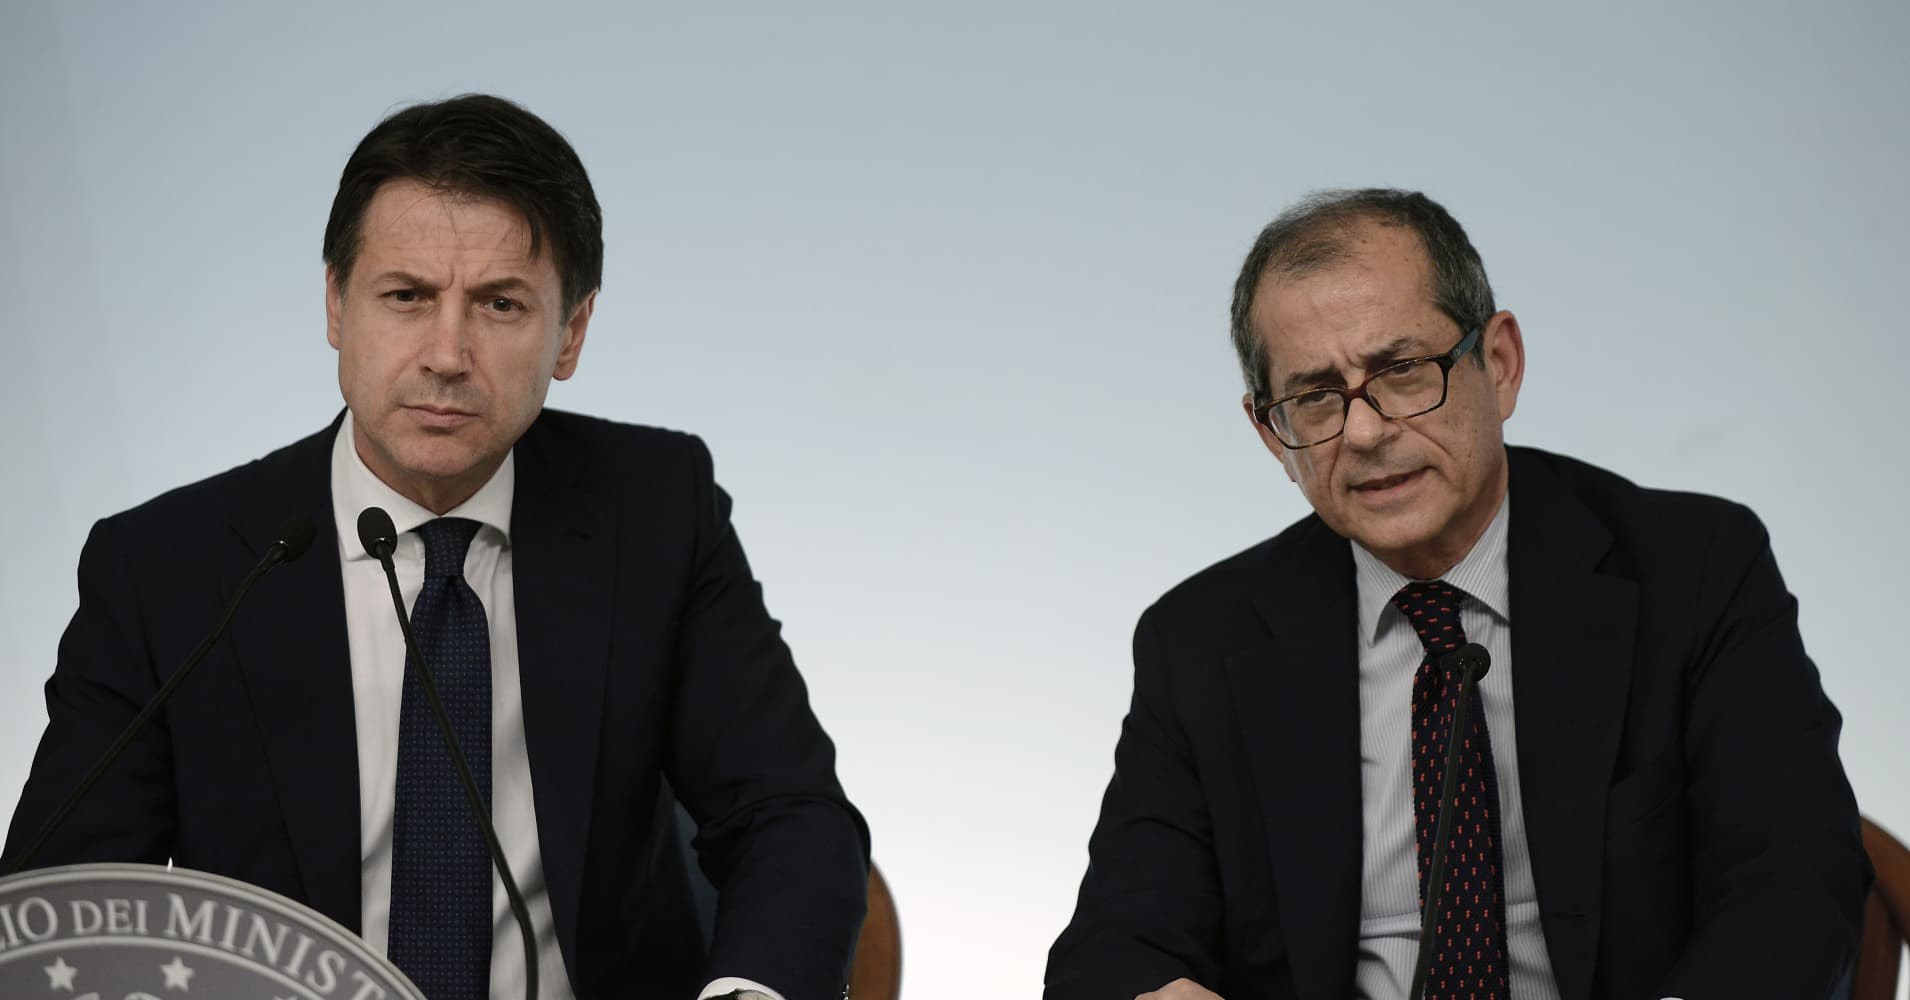 Italy's budget crisis threatens the entire EU project, strategist says